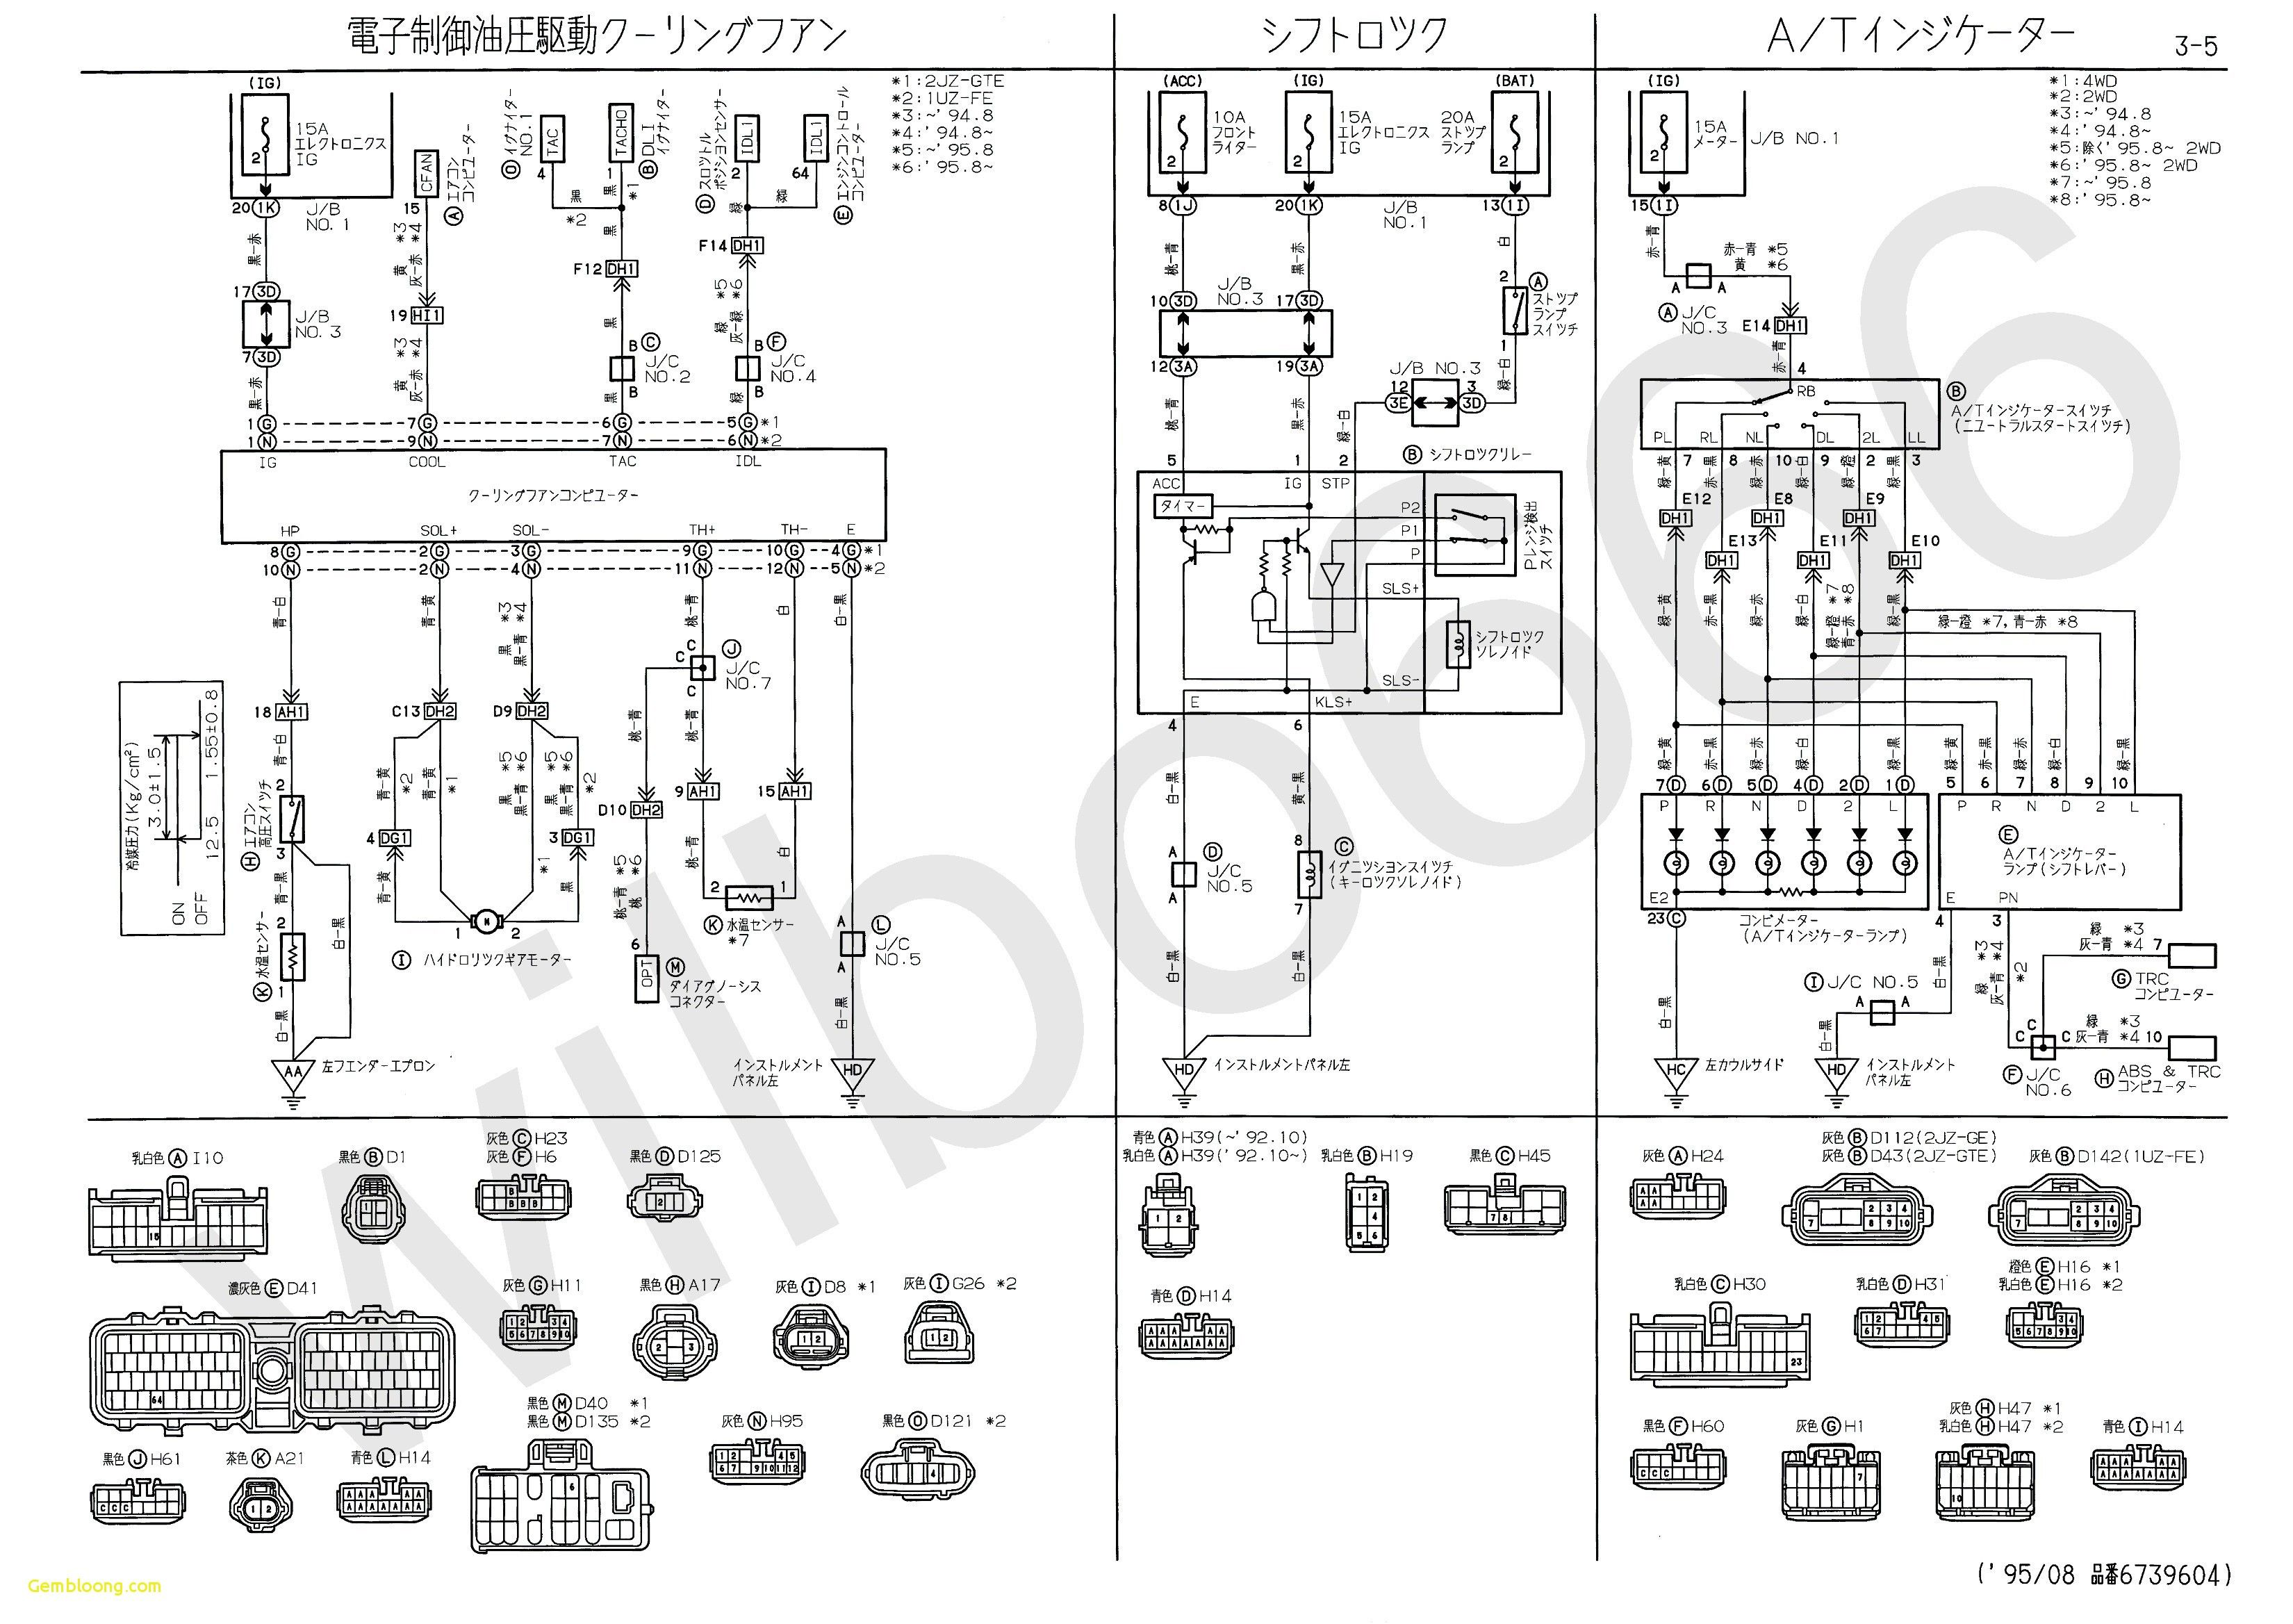 New Bmw E46 Cluster Wiring Diagram | Bmw e46, Bmw, New bmwPinterest